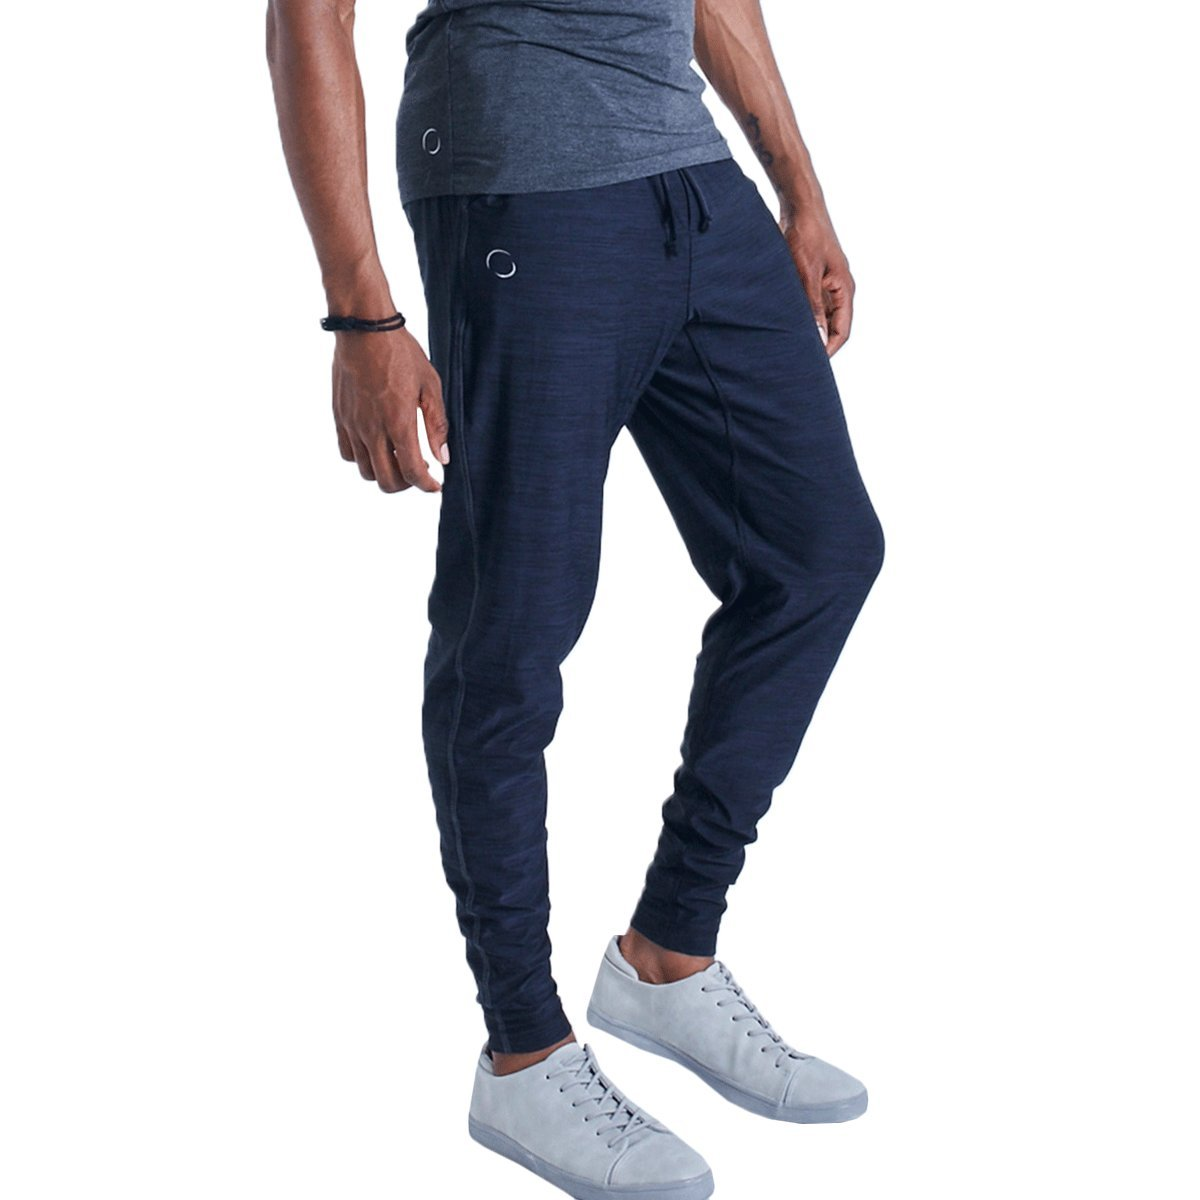 cd1c9d2958 Ohmme Dharma Mens Yoga Joggers: Amazon.co.uk: Clothing